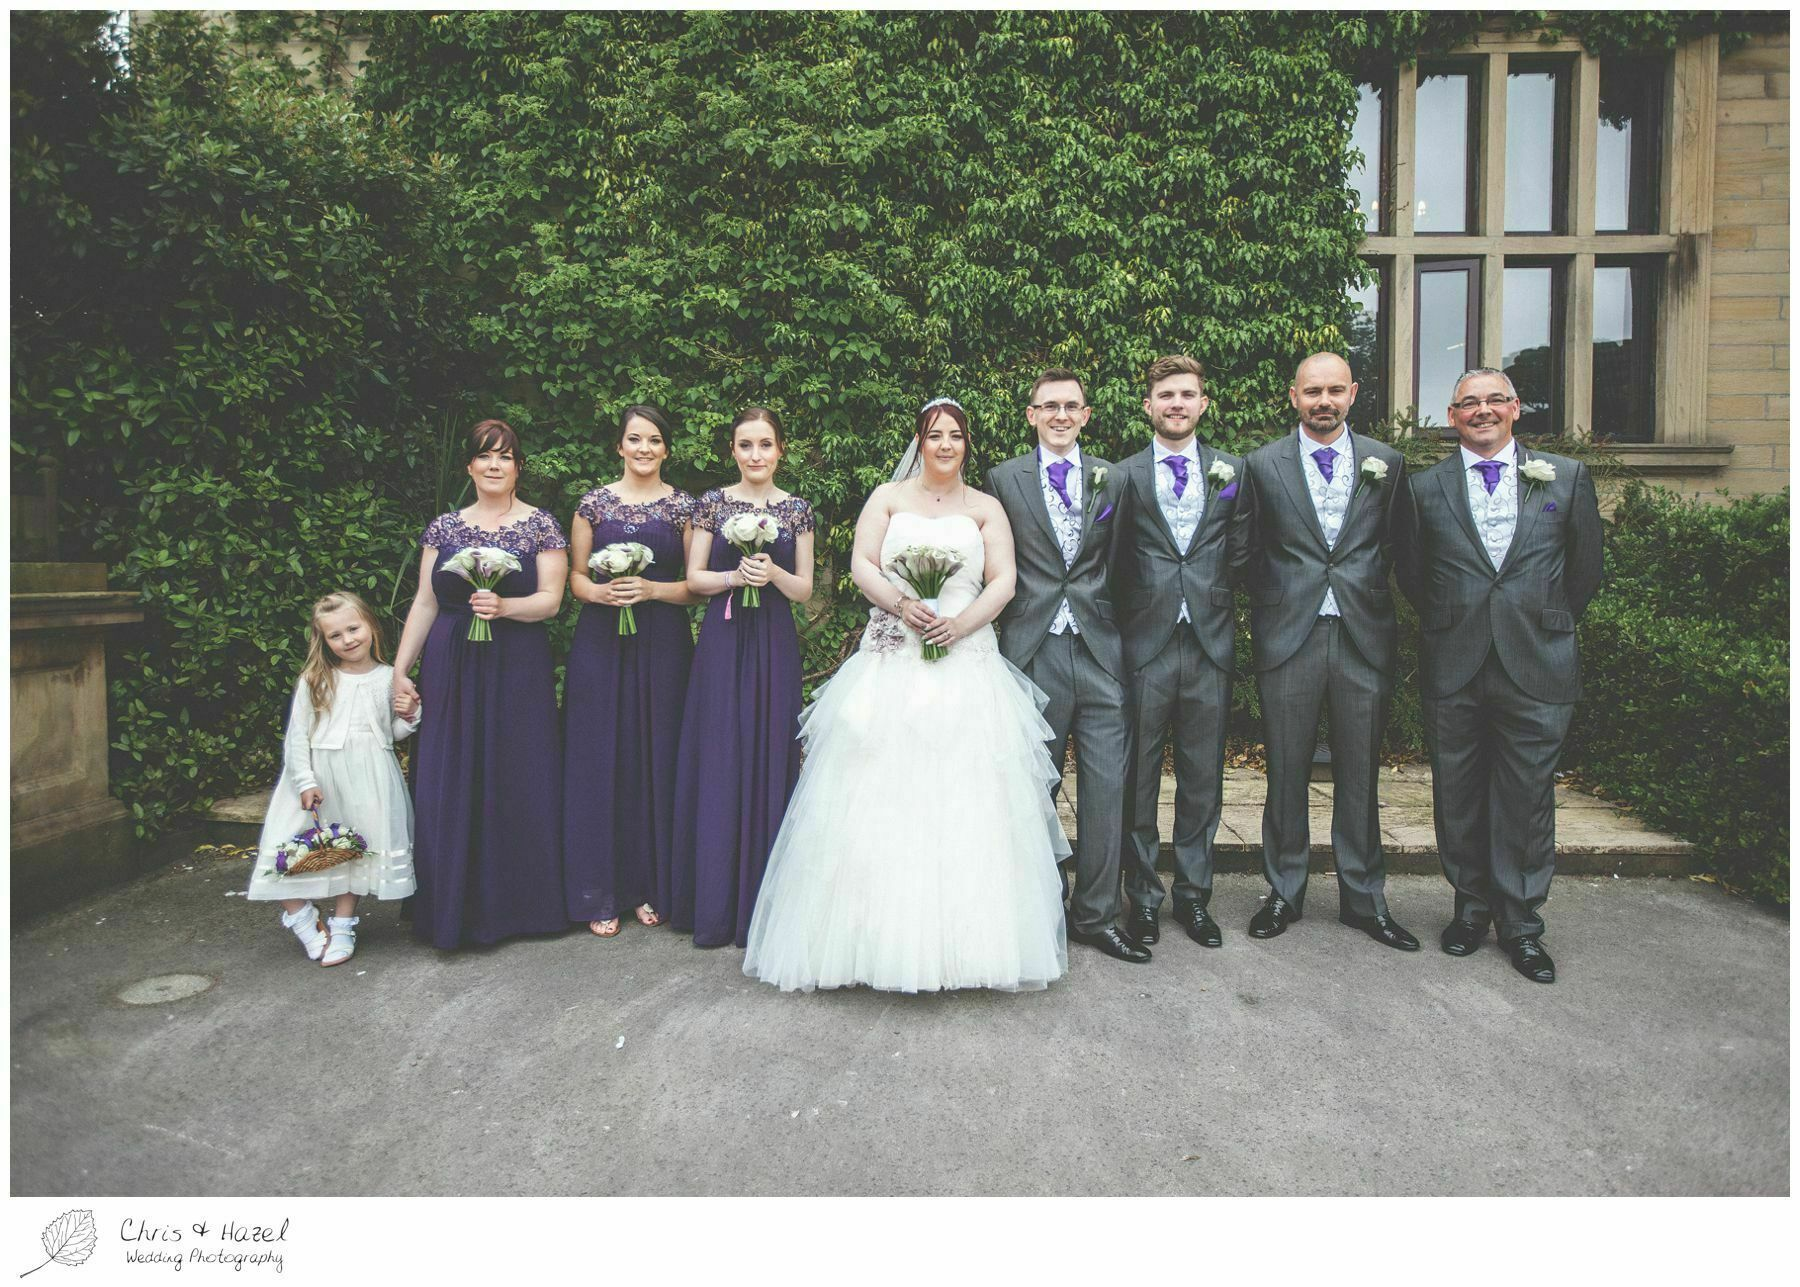 formal portraits, formal photographs, bagden hall wedding venue, documentary wedding photography, denny dale, huddersfield, Wedding Photographer, Bagden Hall, Wedding Photography, Chris and Hazel Wedding Photography, Alex tomenson, Vicky hunt